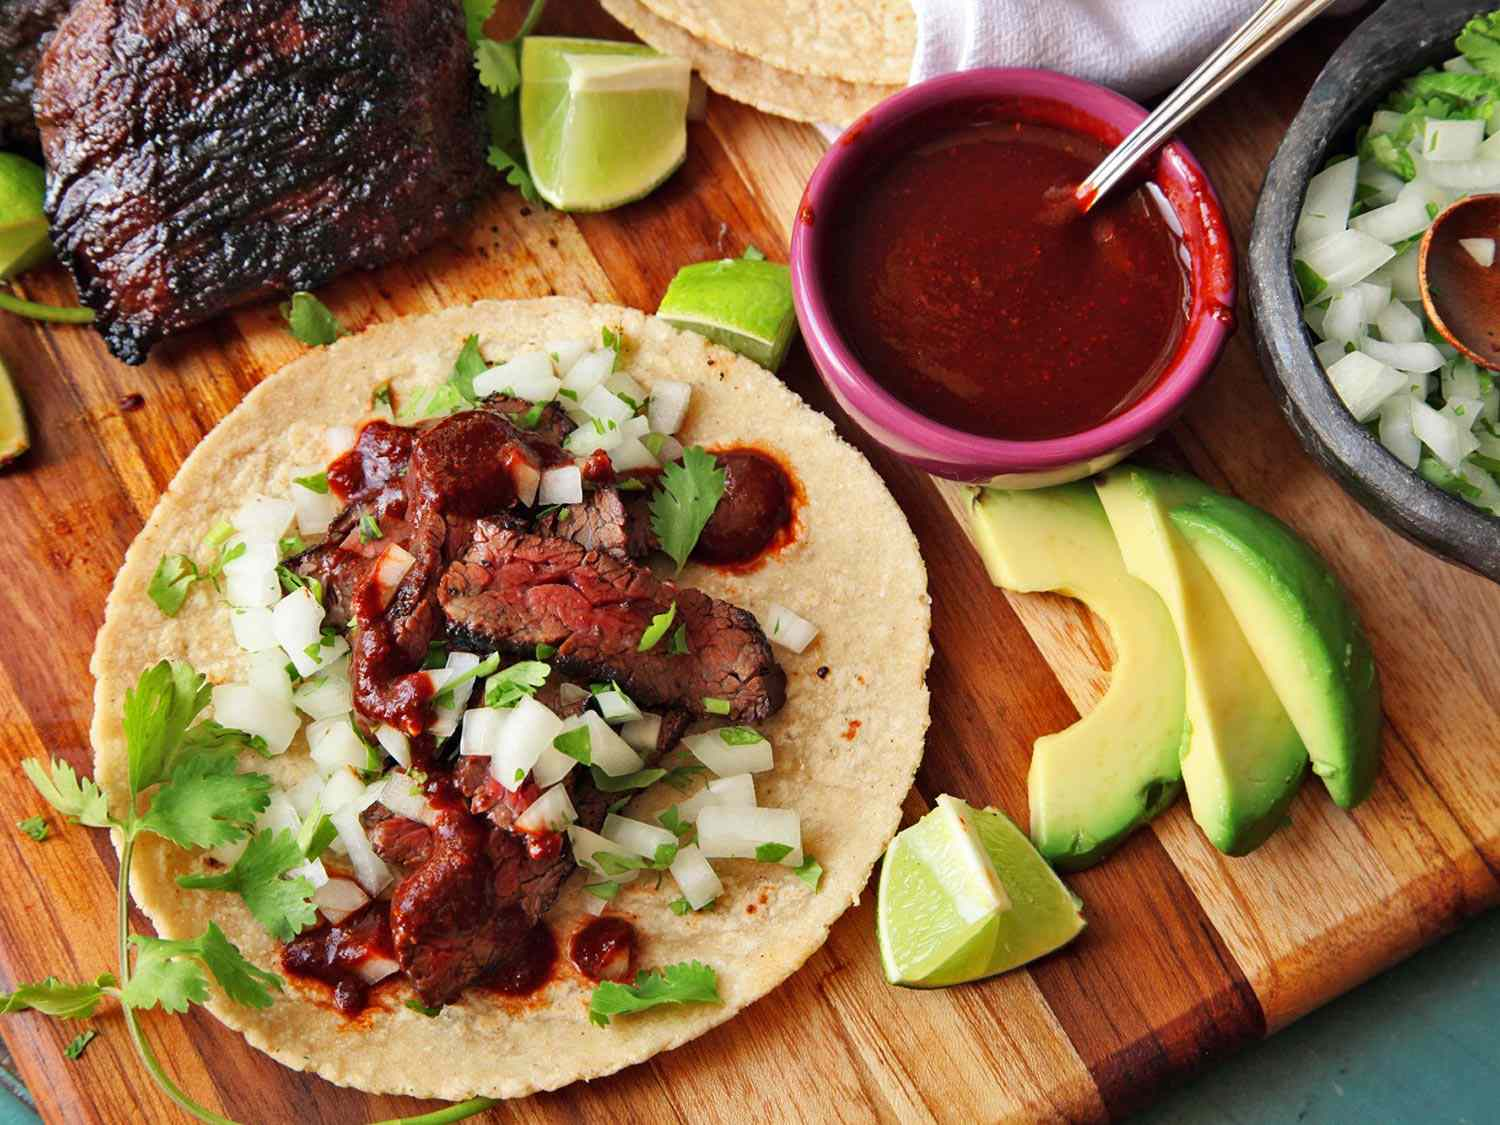 A carne asada taco made with grilled medium rare steak, chopped onion, cilantro and red salsa, plated on a wooden cutting board with additional steak and toppings surrounding it.